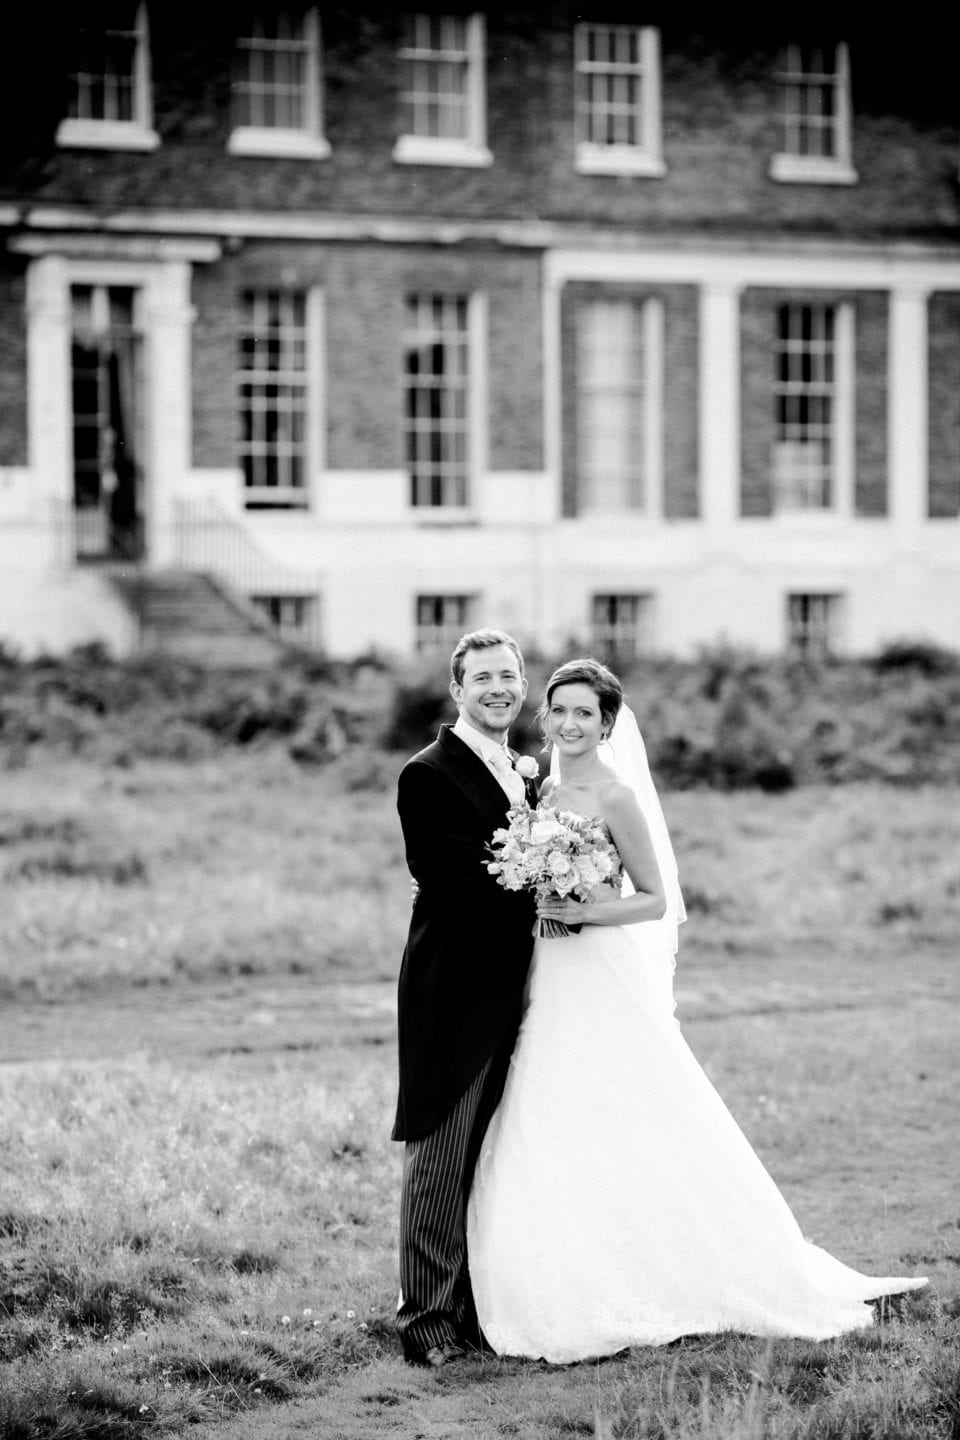 Penny & James in the grounds of Bushy Park